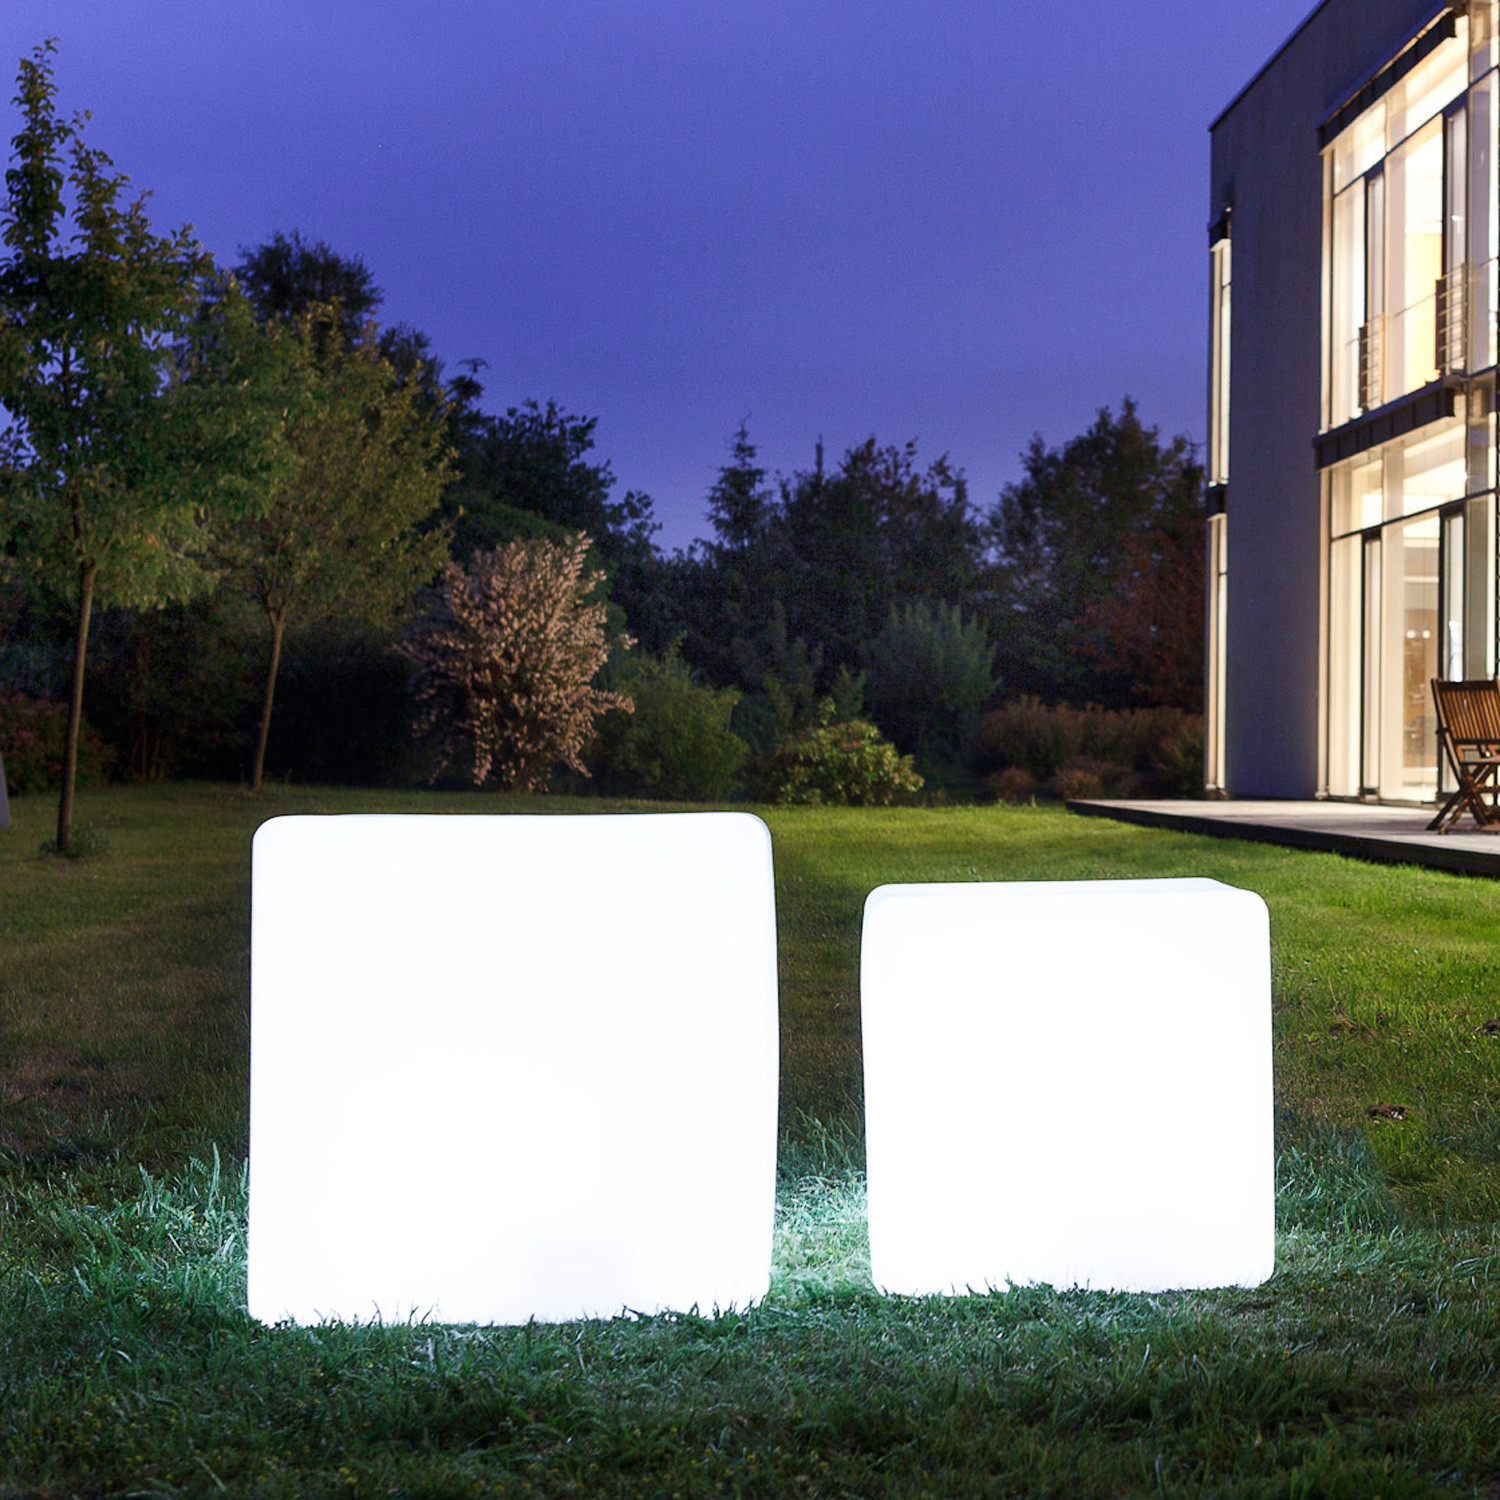 Cube Light by Sophie Ruhland